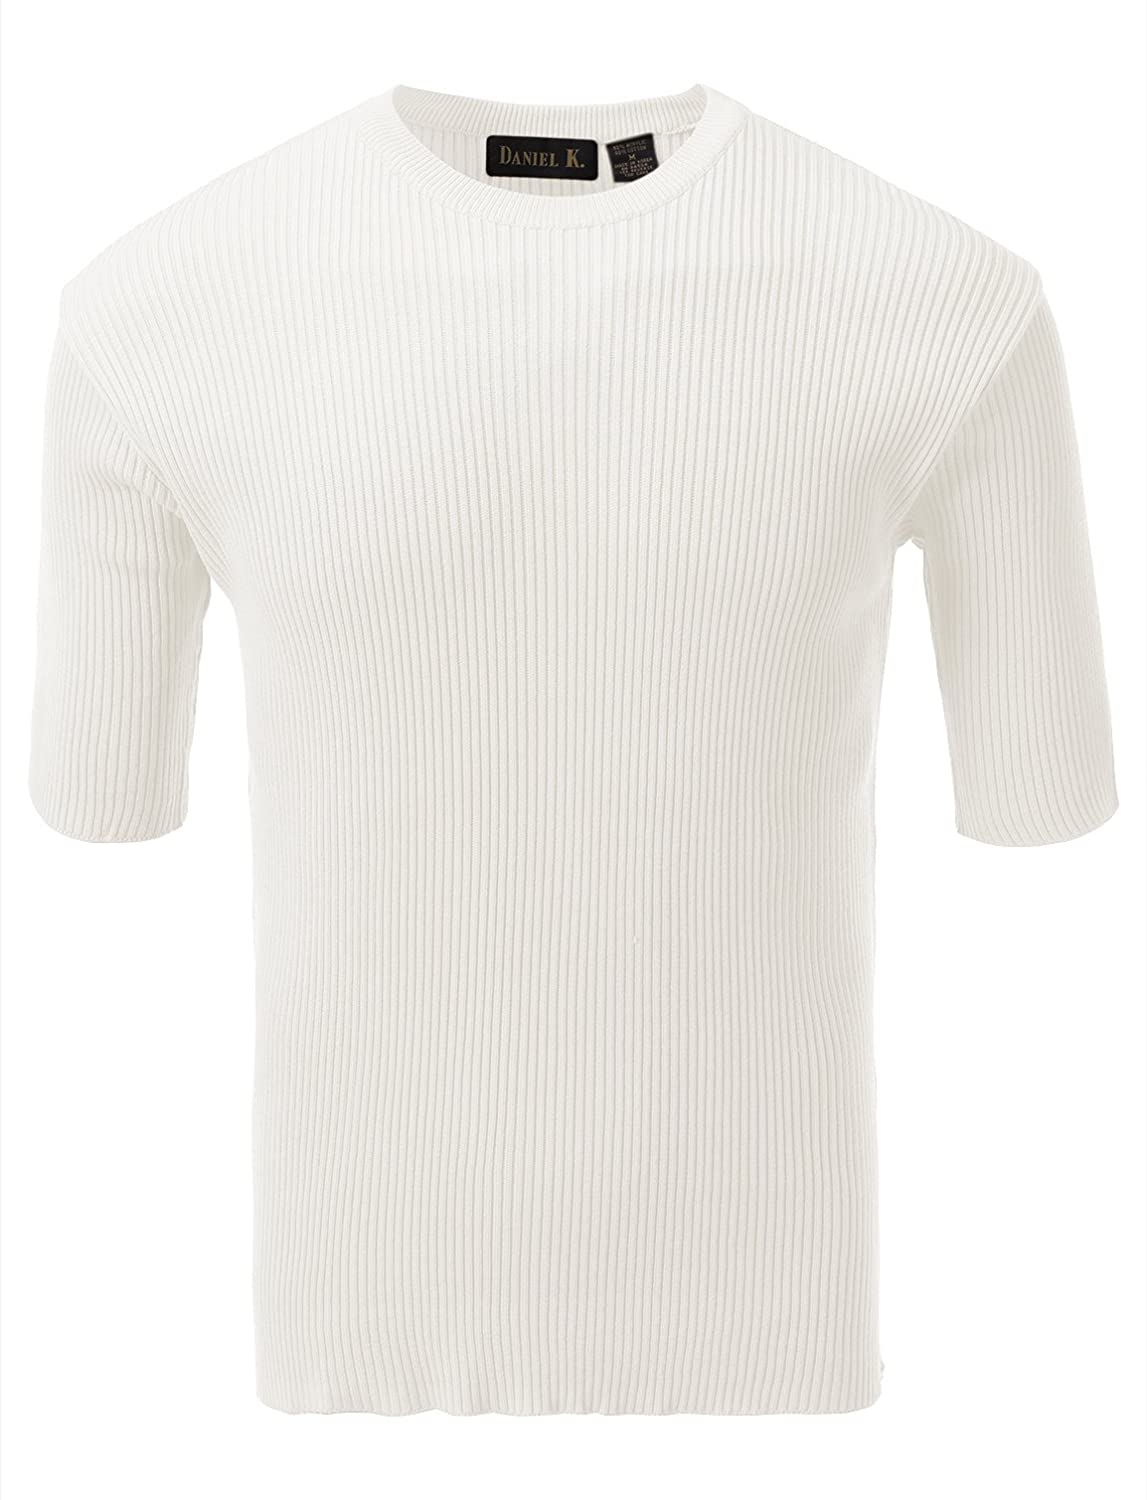 7 Encounter Men's Crewneck Short Sleeve Small Ribbed Sweater